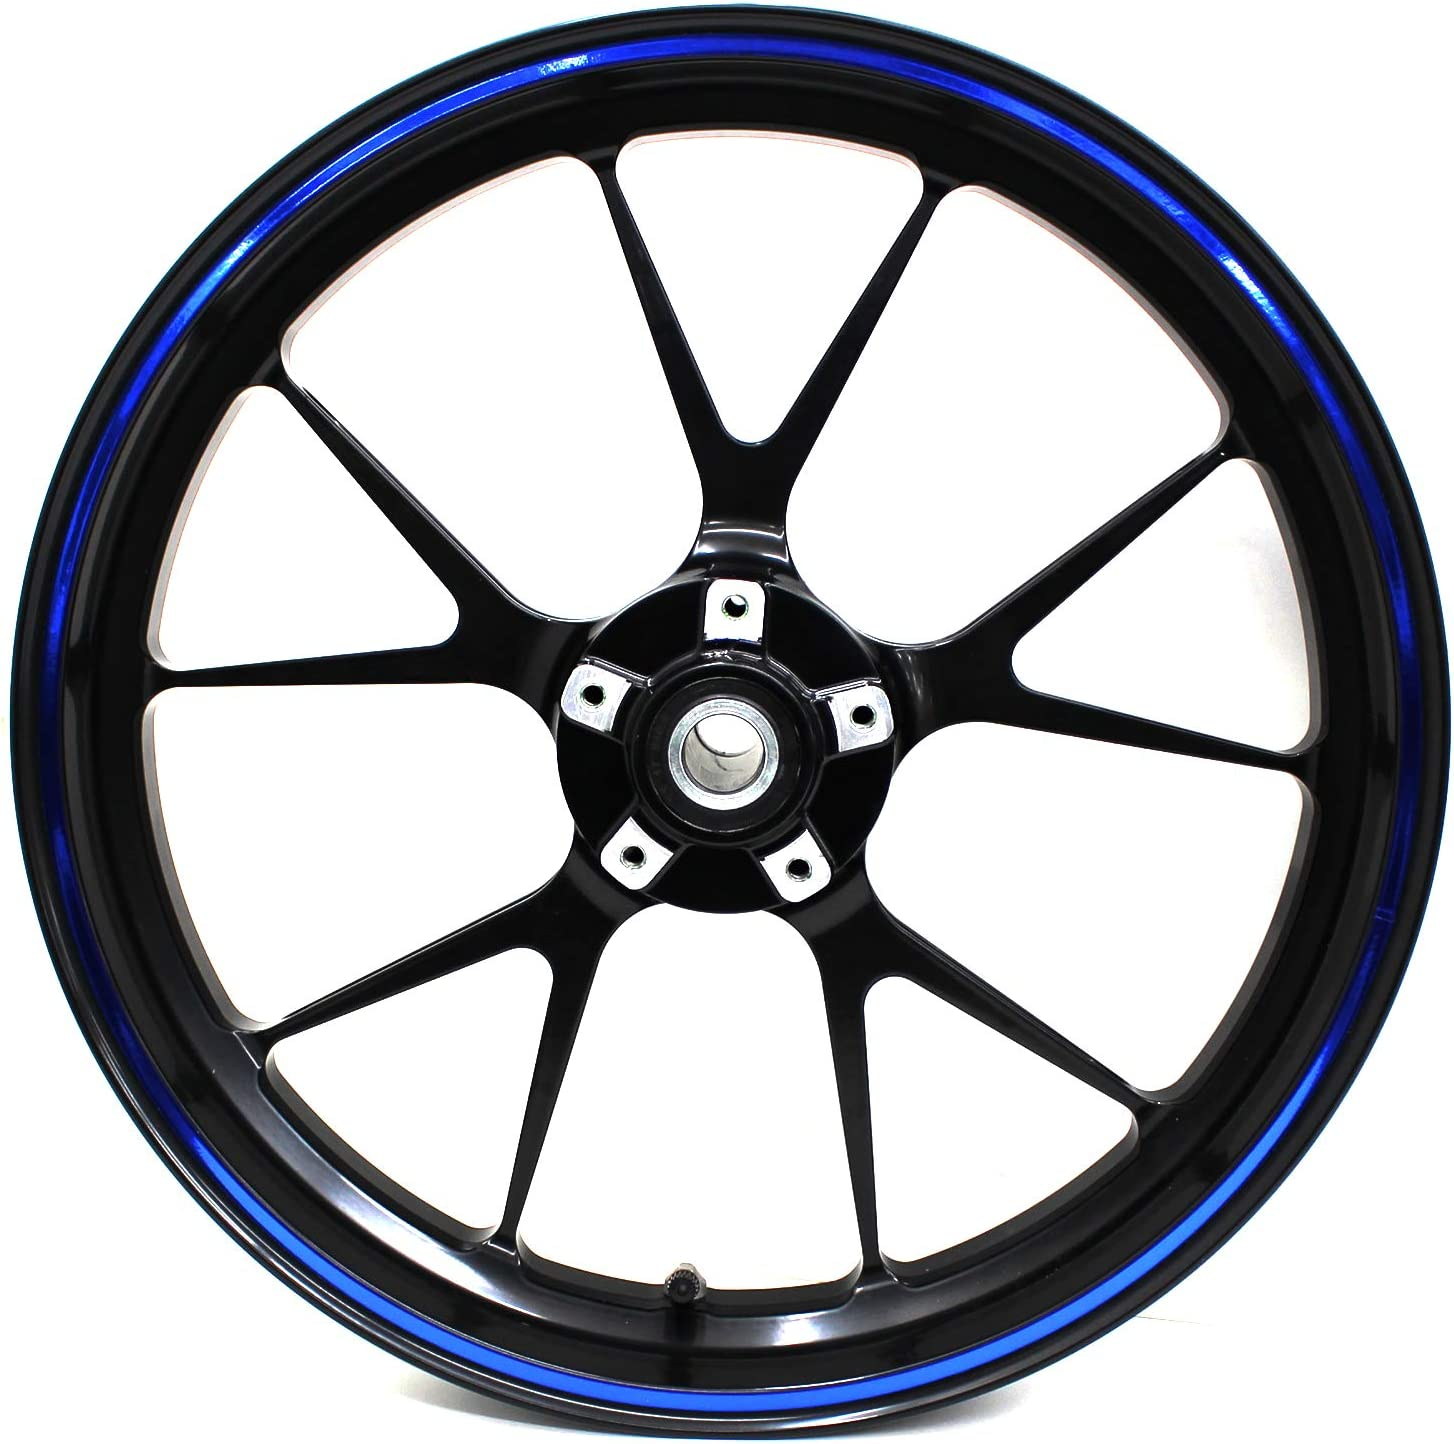 Wheel rim sticker chrome rim design including mounting tool complete set Finest Folia suitable for 17 inch and 16 inch 18 inch 19 inch rims motorcycle car bicycle.